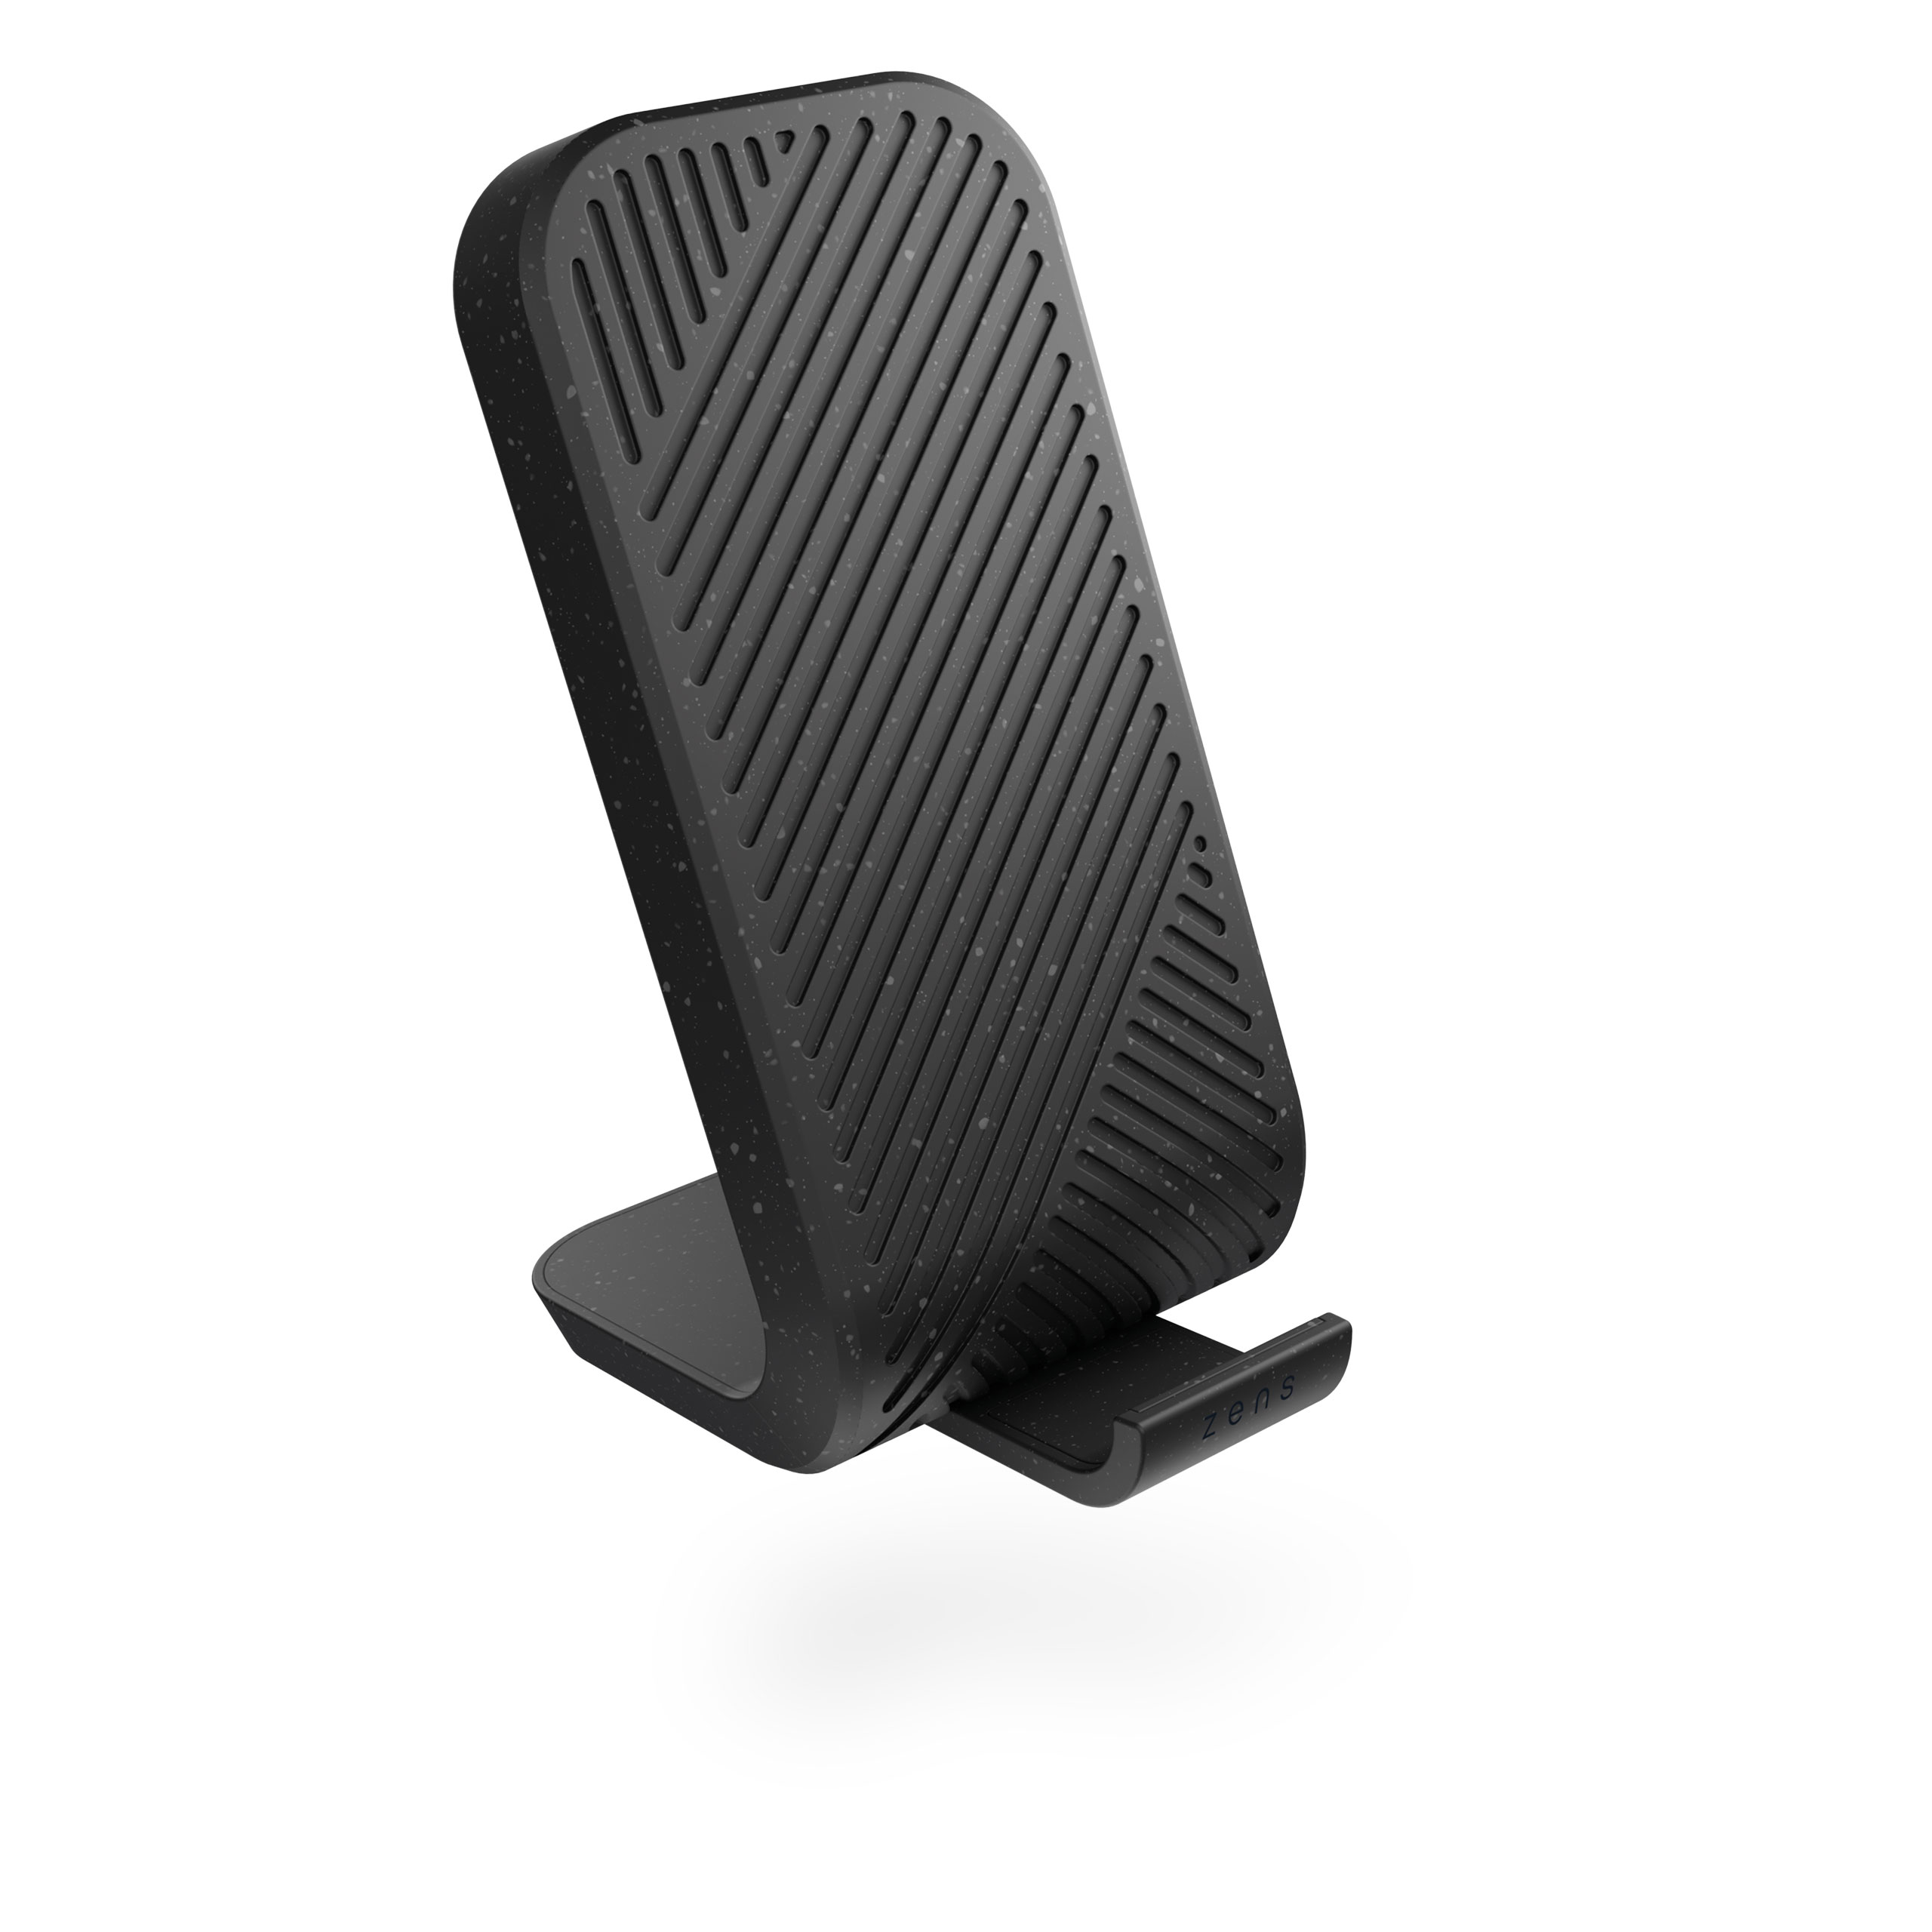 ZEMSC2P Zens Modular Stand Wireless Charger Main Station Front Side View